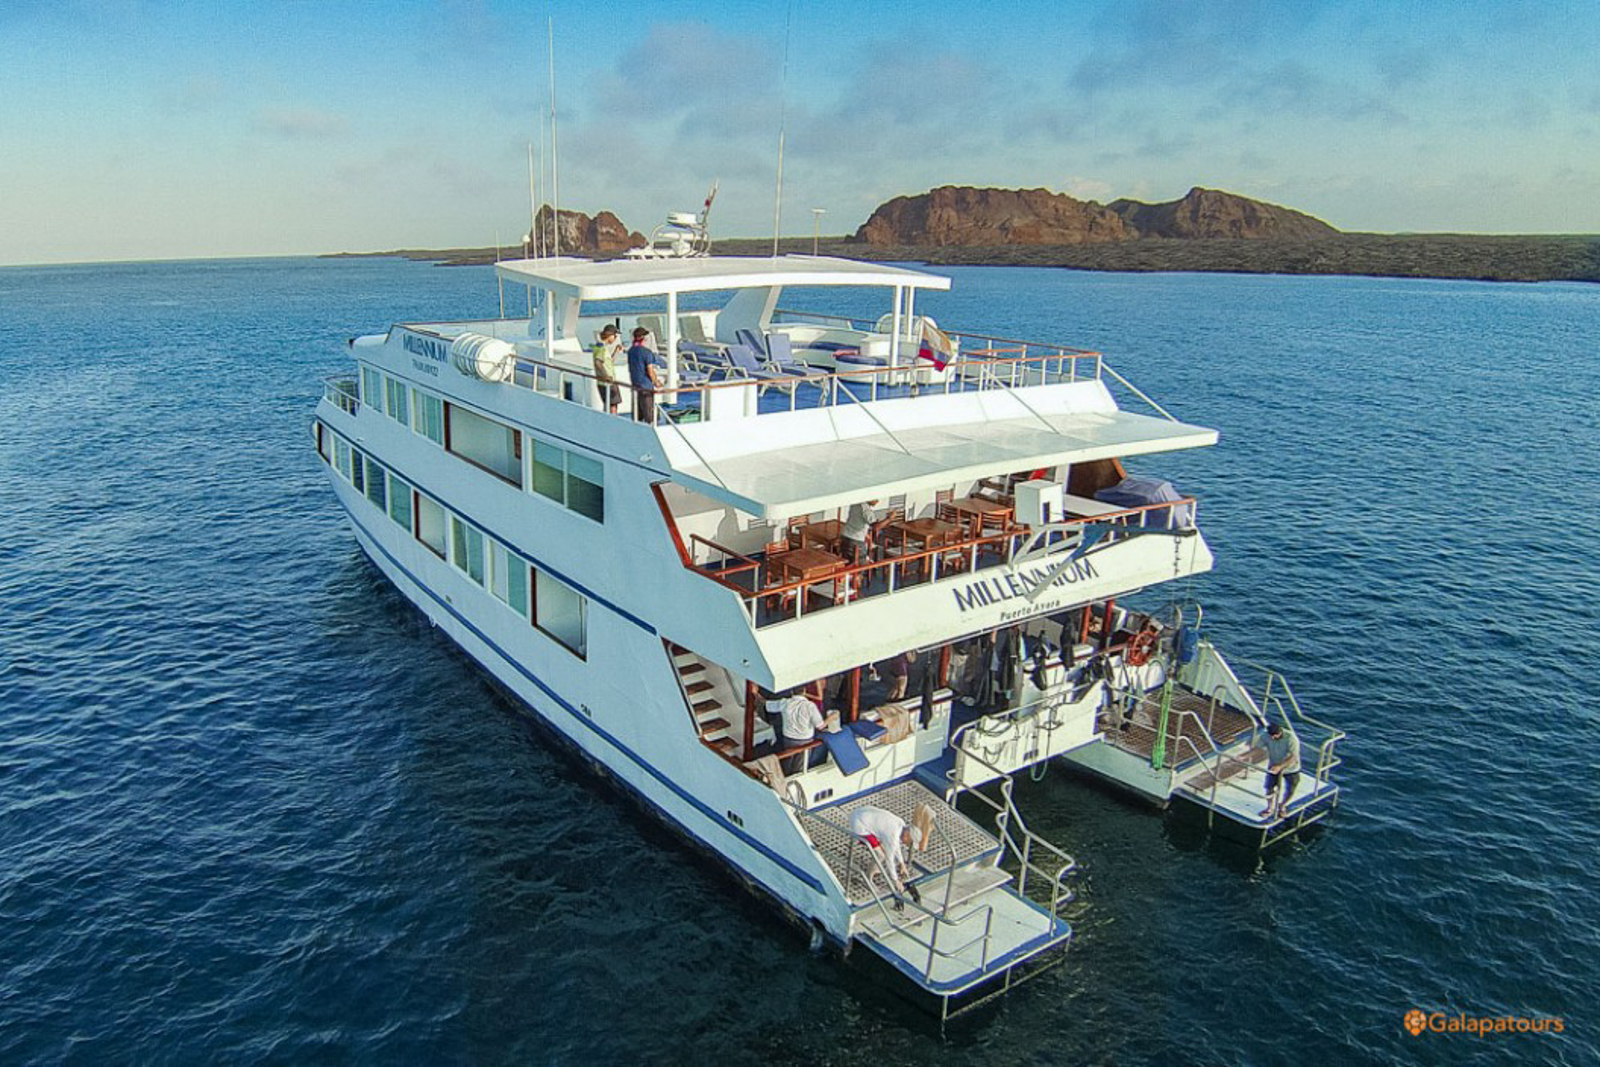 galapagos islands cruise millennium ship